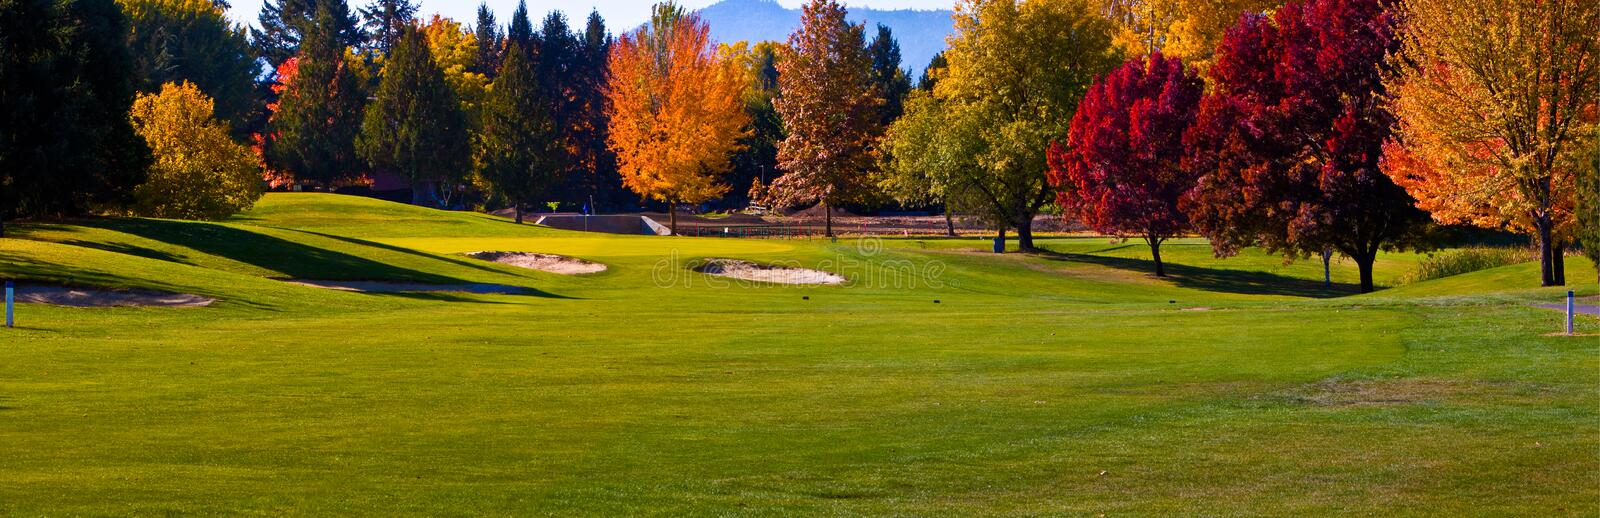 Golf Course Pano stock image